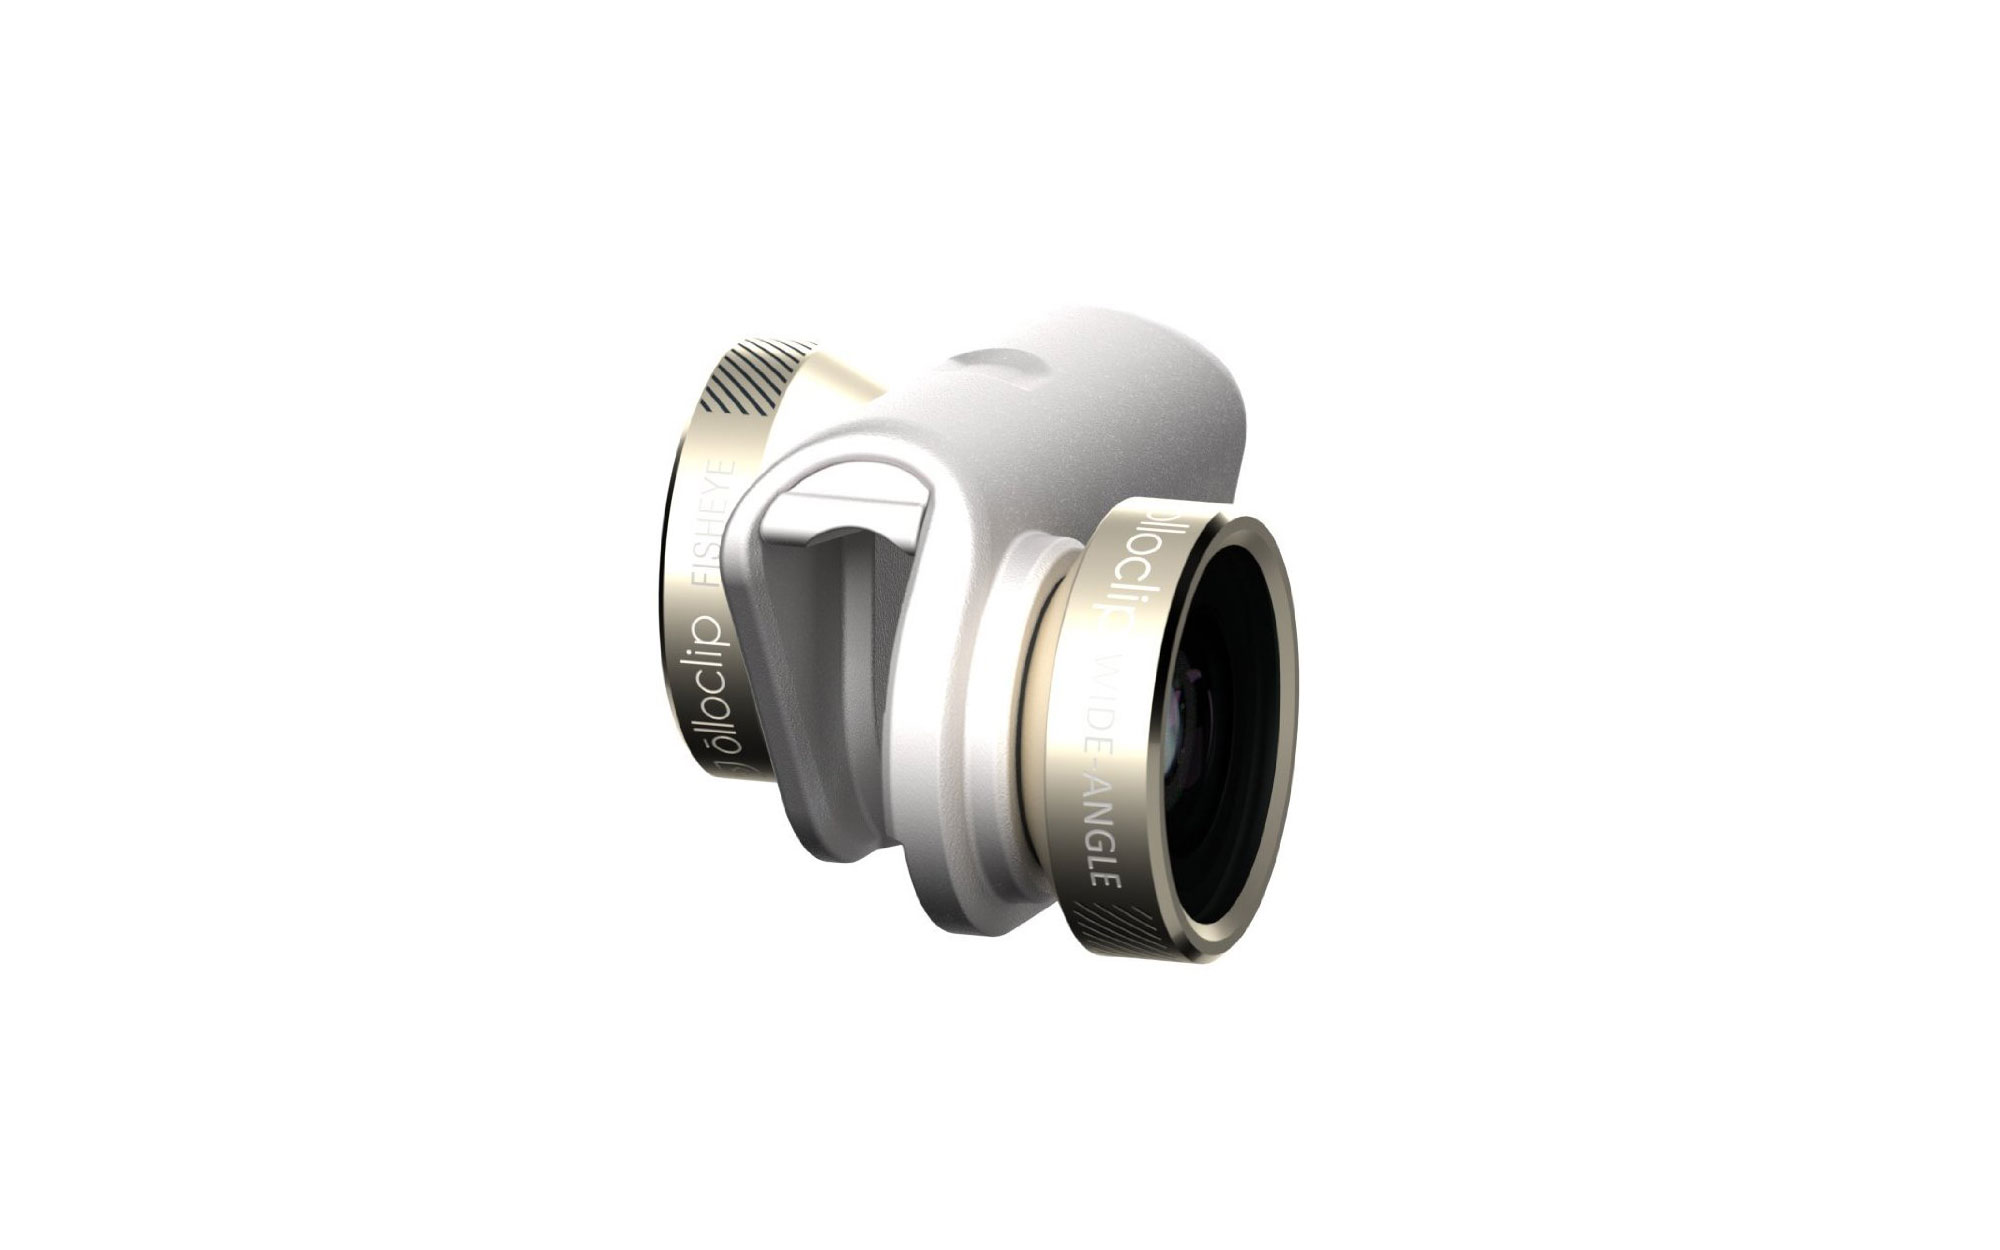 Tech-ollo-clip-gold-iphone-lens-GG1115.jpg